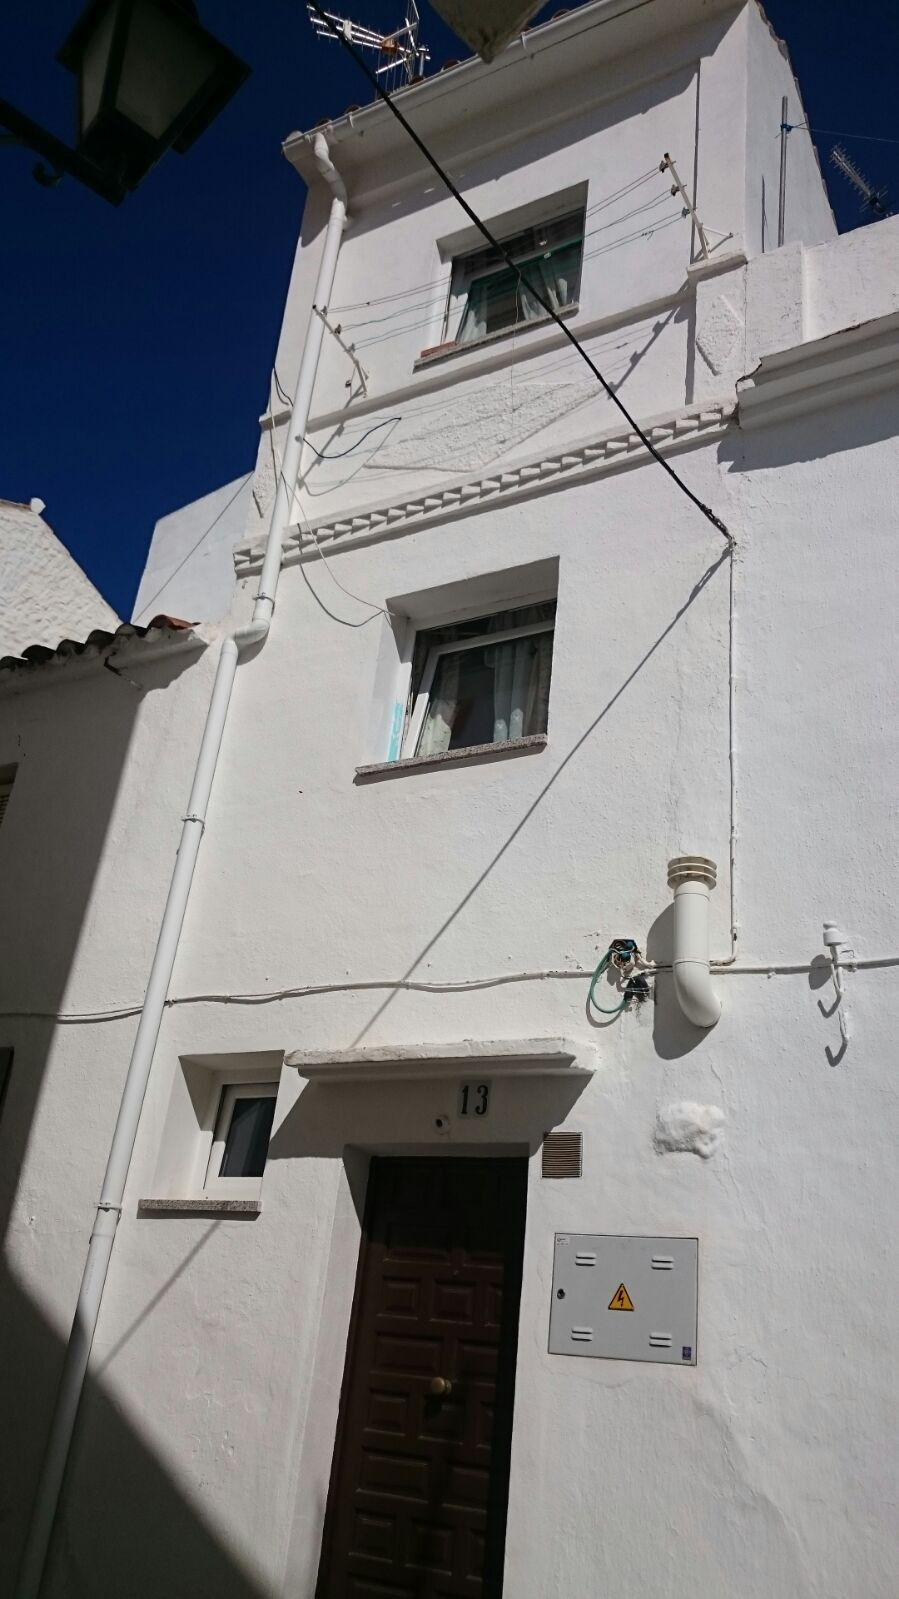 Cozy townhouse in the village of Ojen. It has 2 bedrooms, bathroom, living room and kitchen distribu, Spain